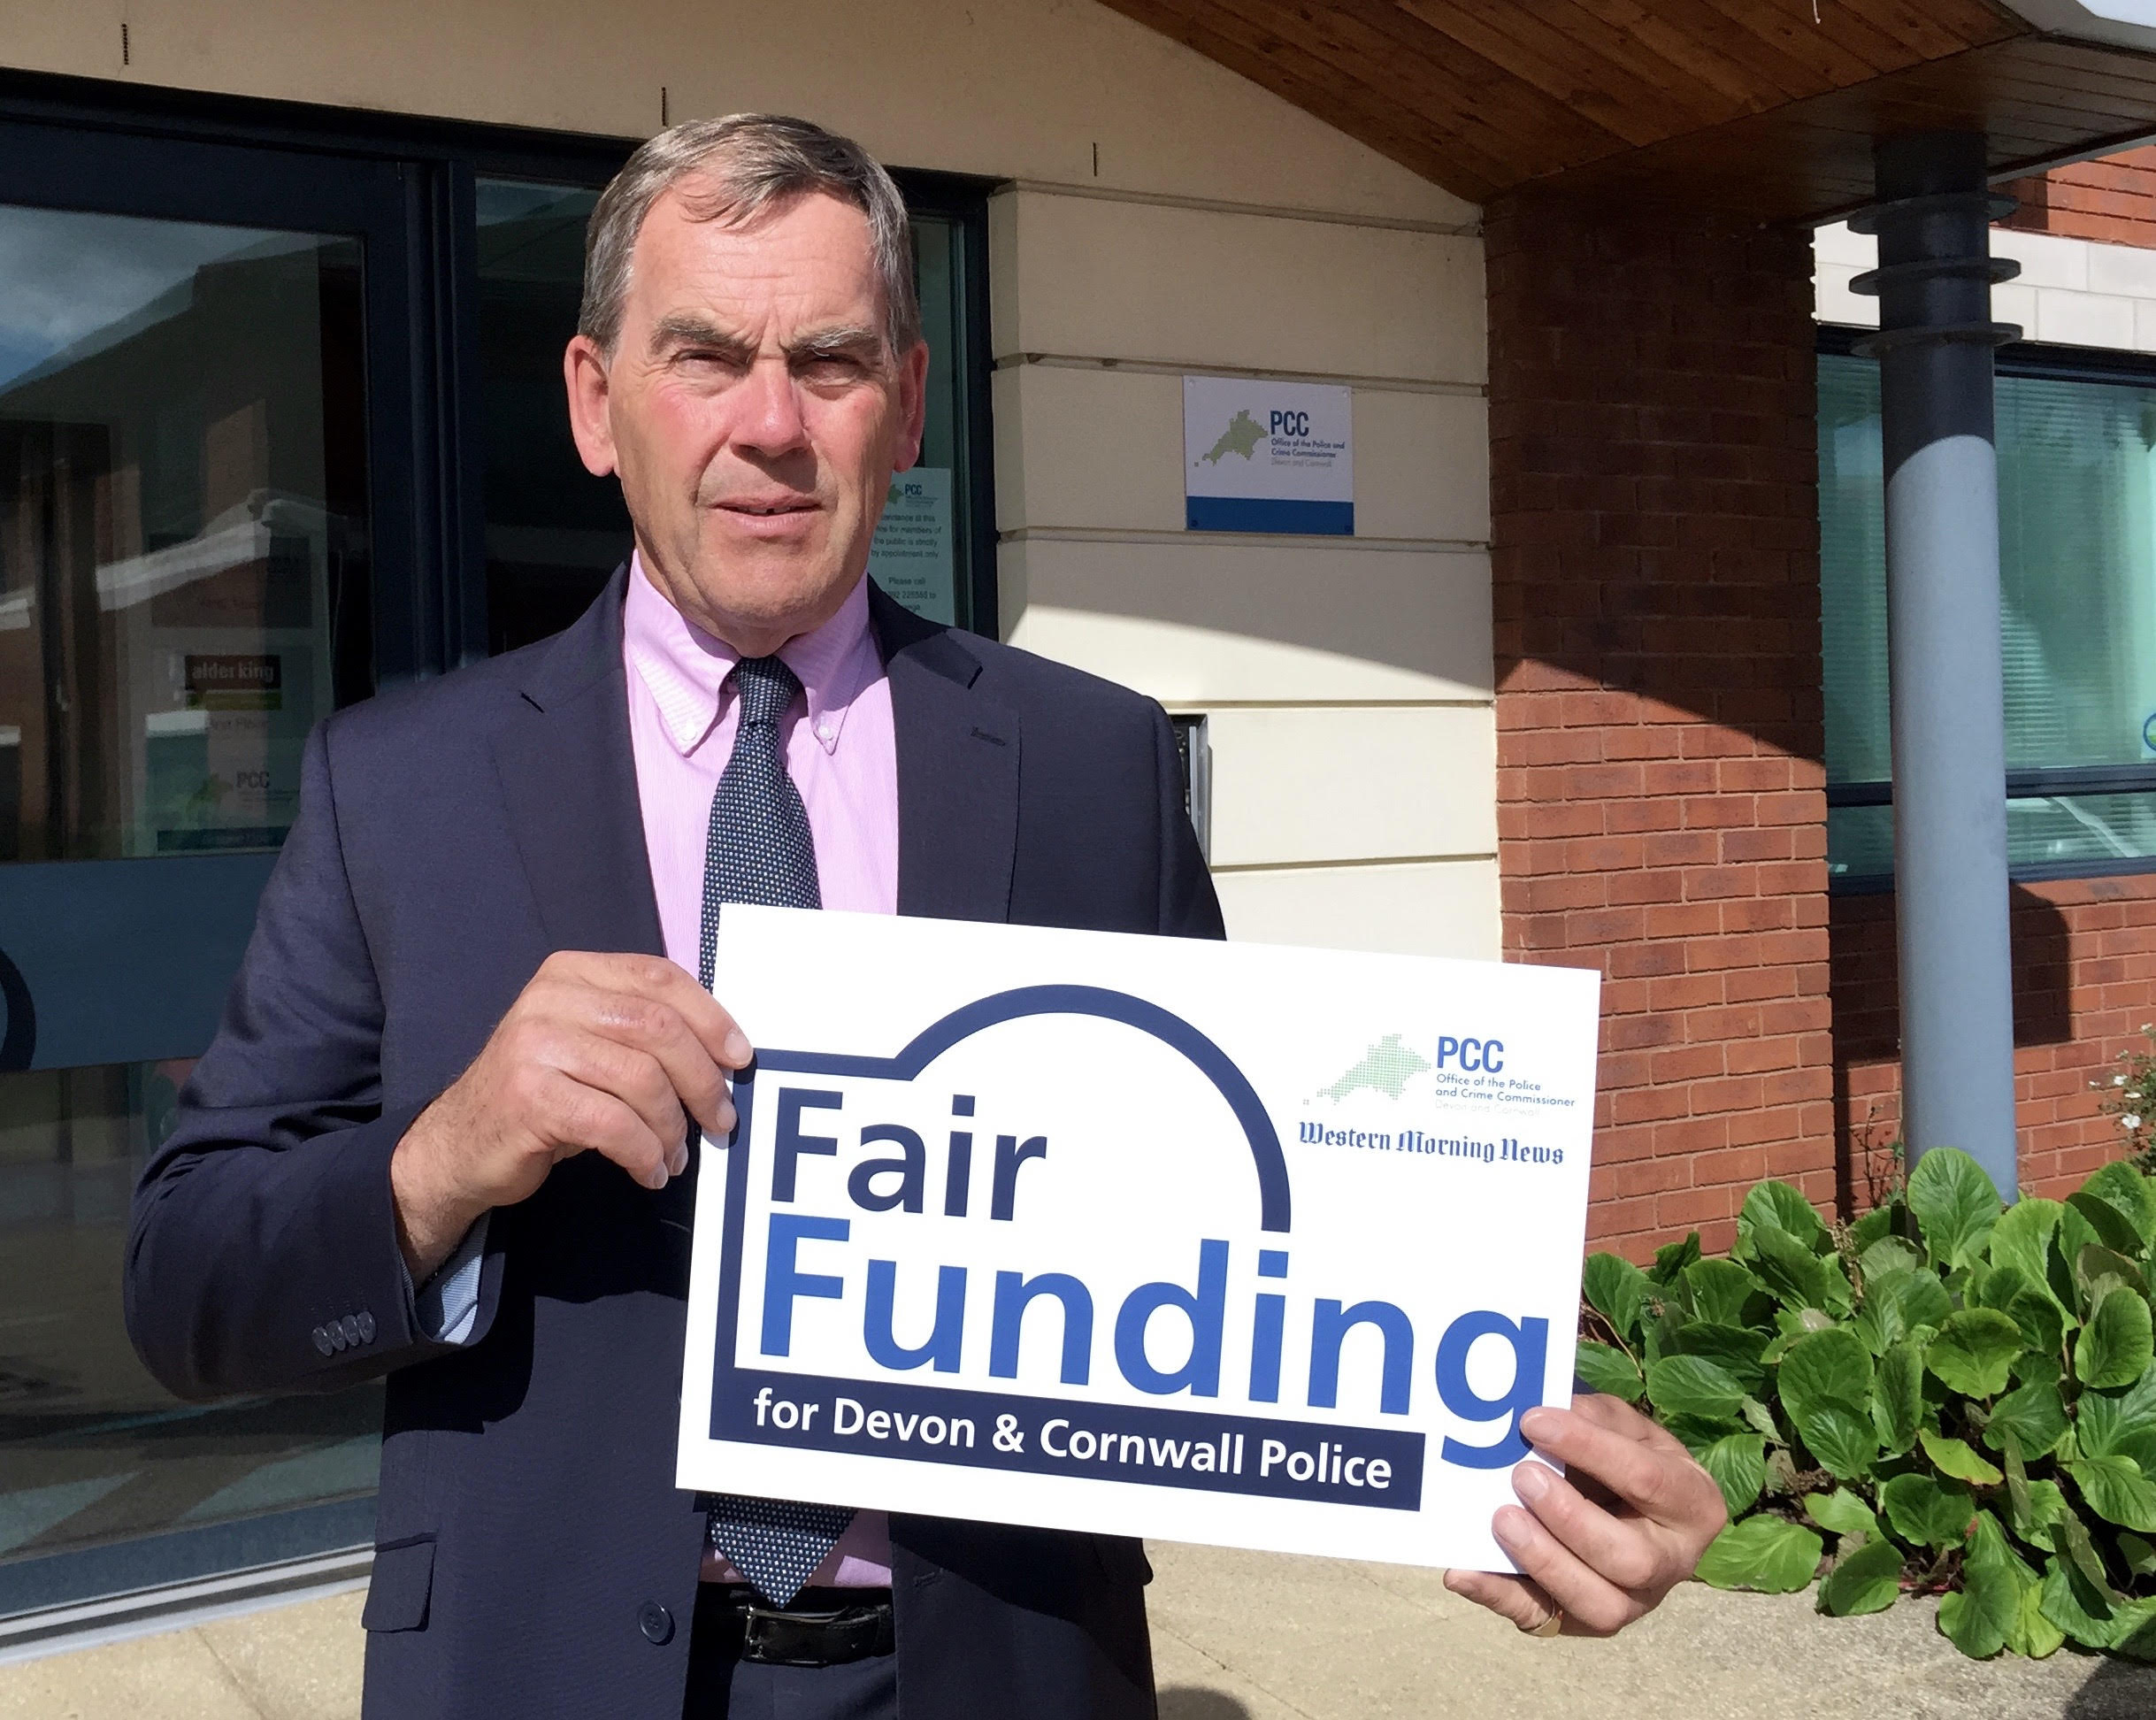 Commissioner to give evidence showing unfairness of funding formula